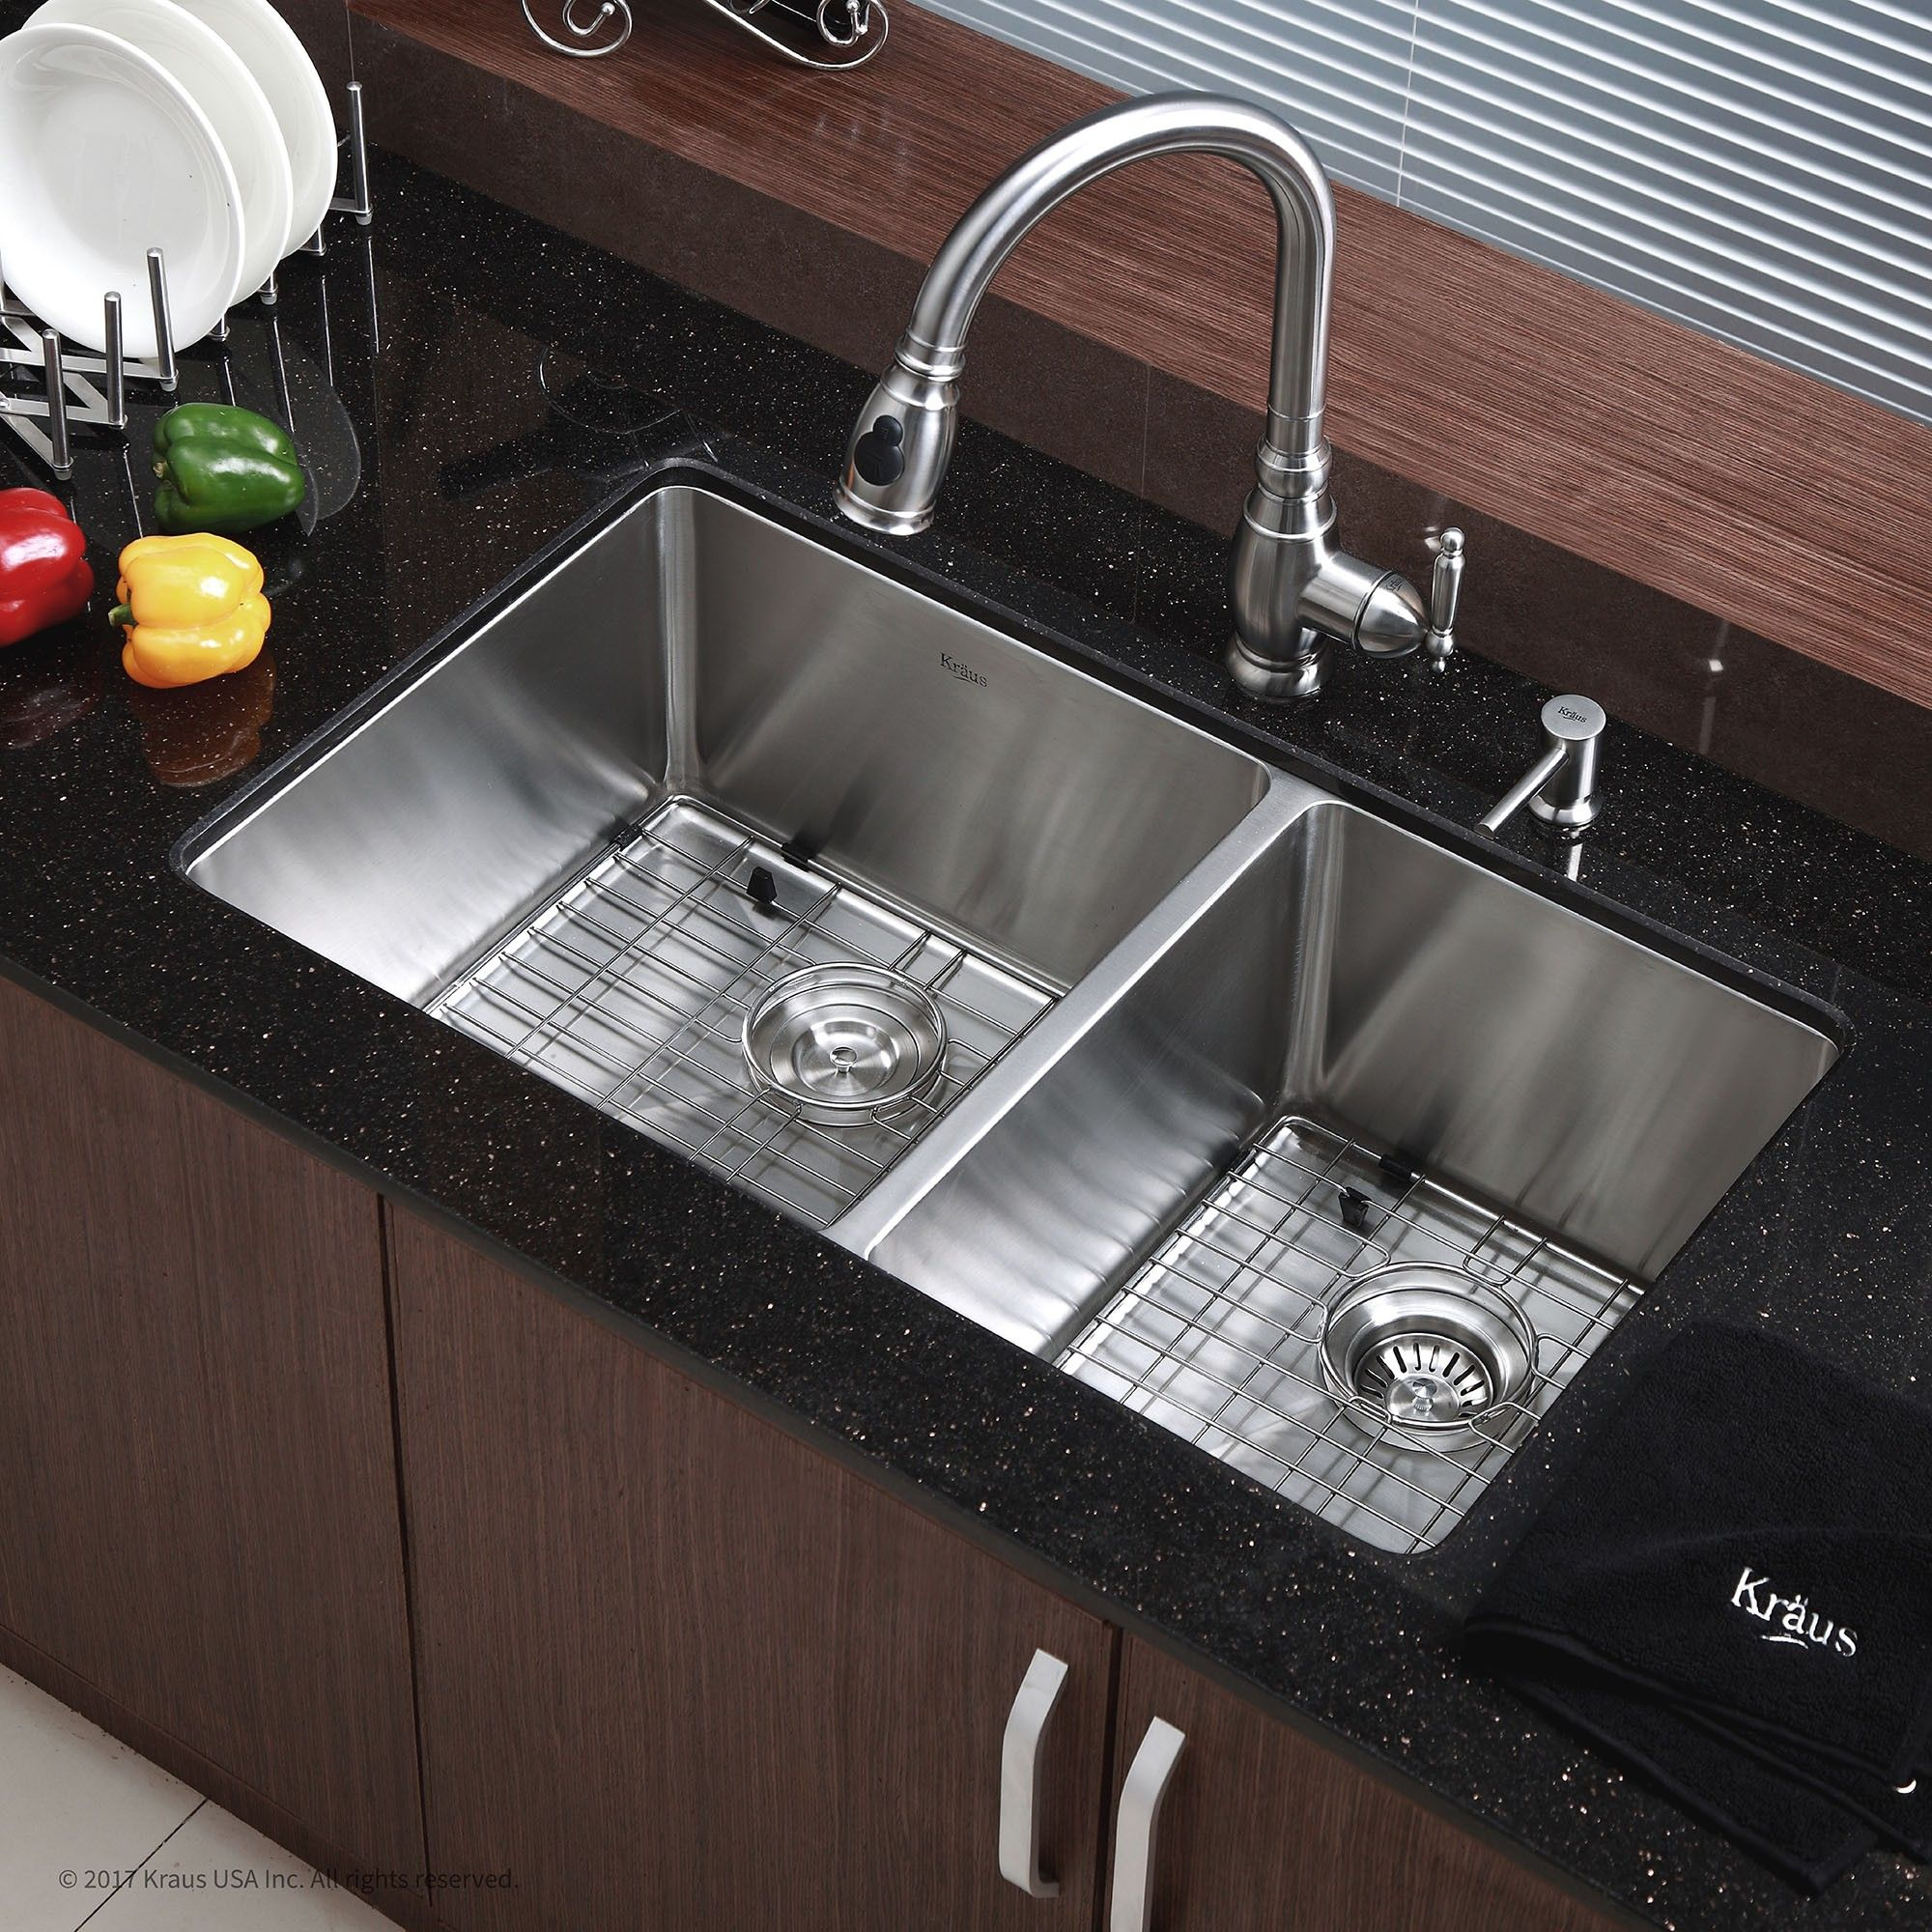 Extra Deep Basin Design With Gently Rounded Corners For Easy